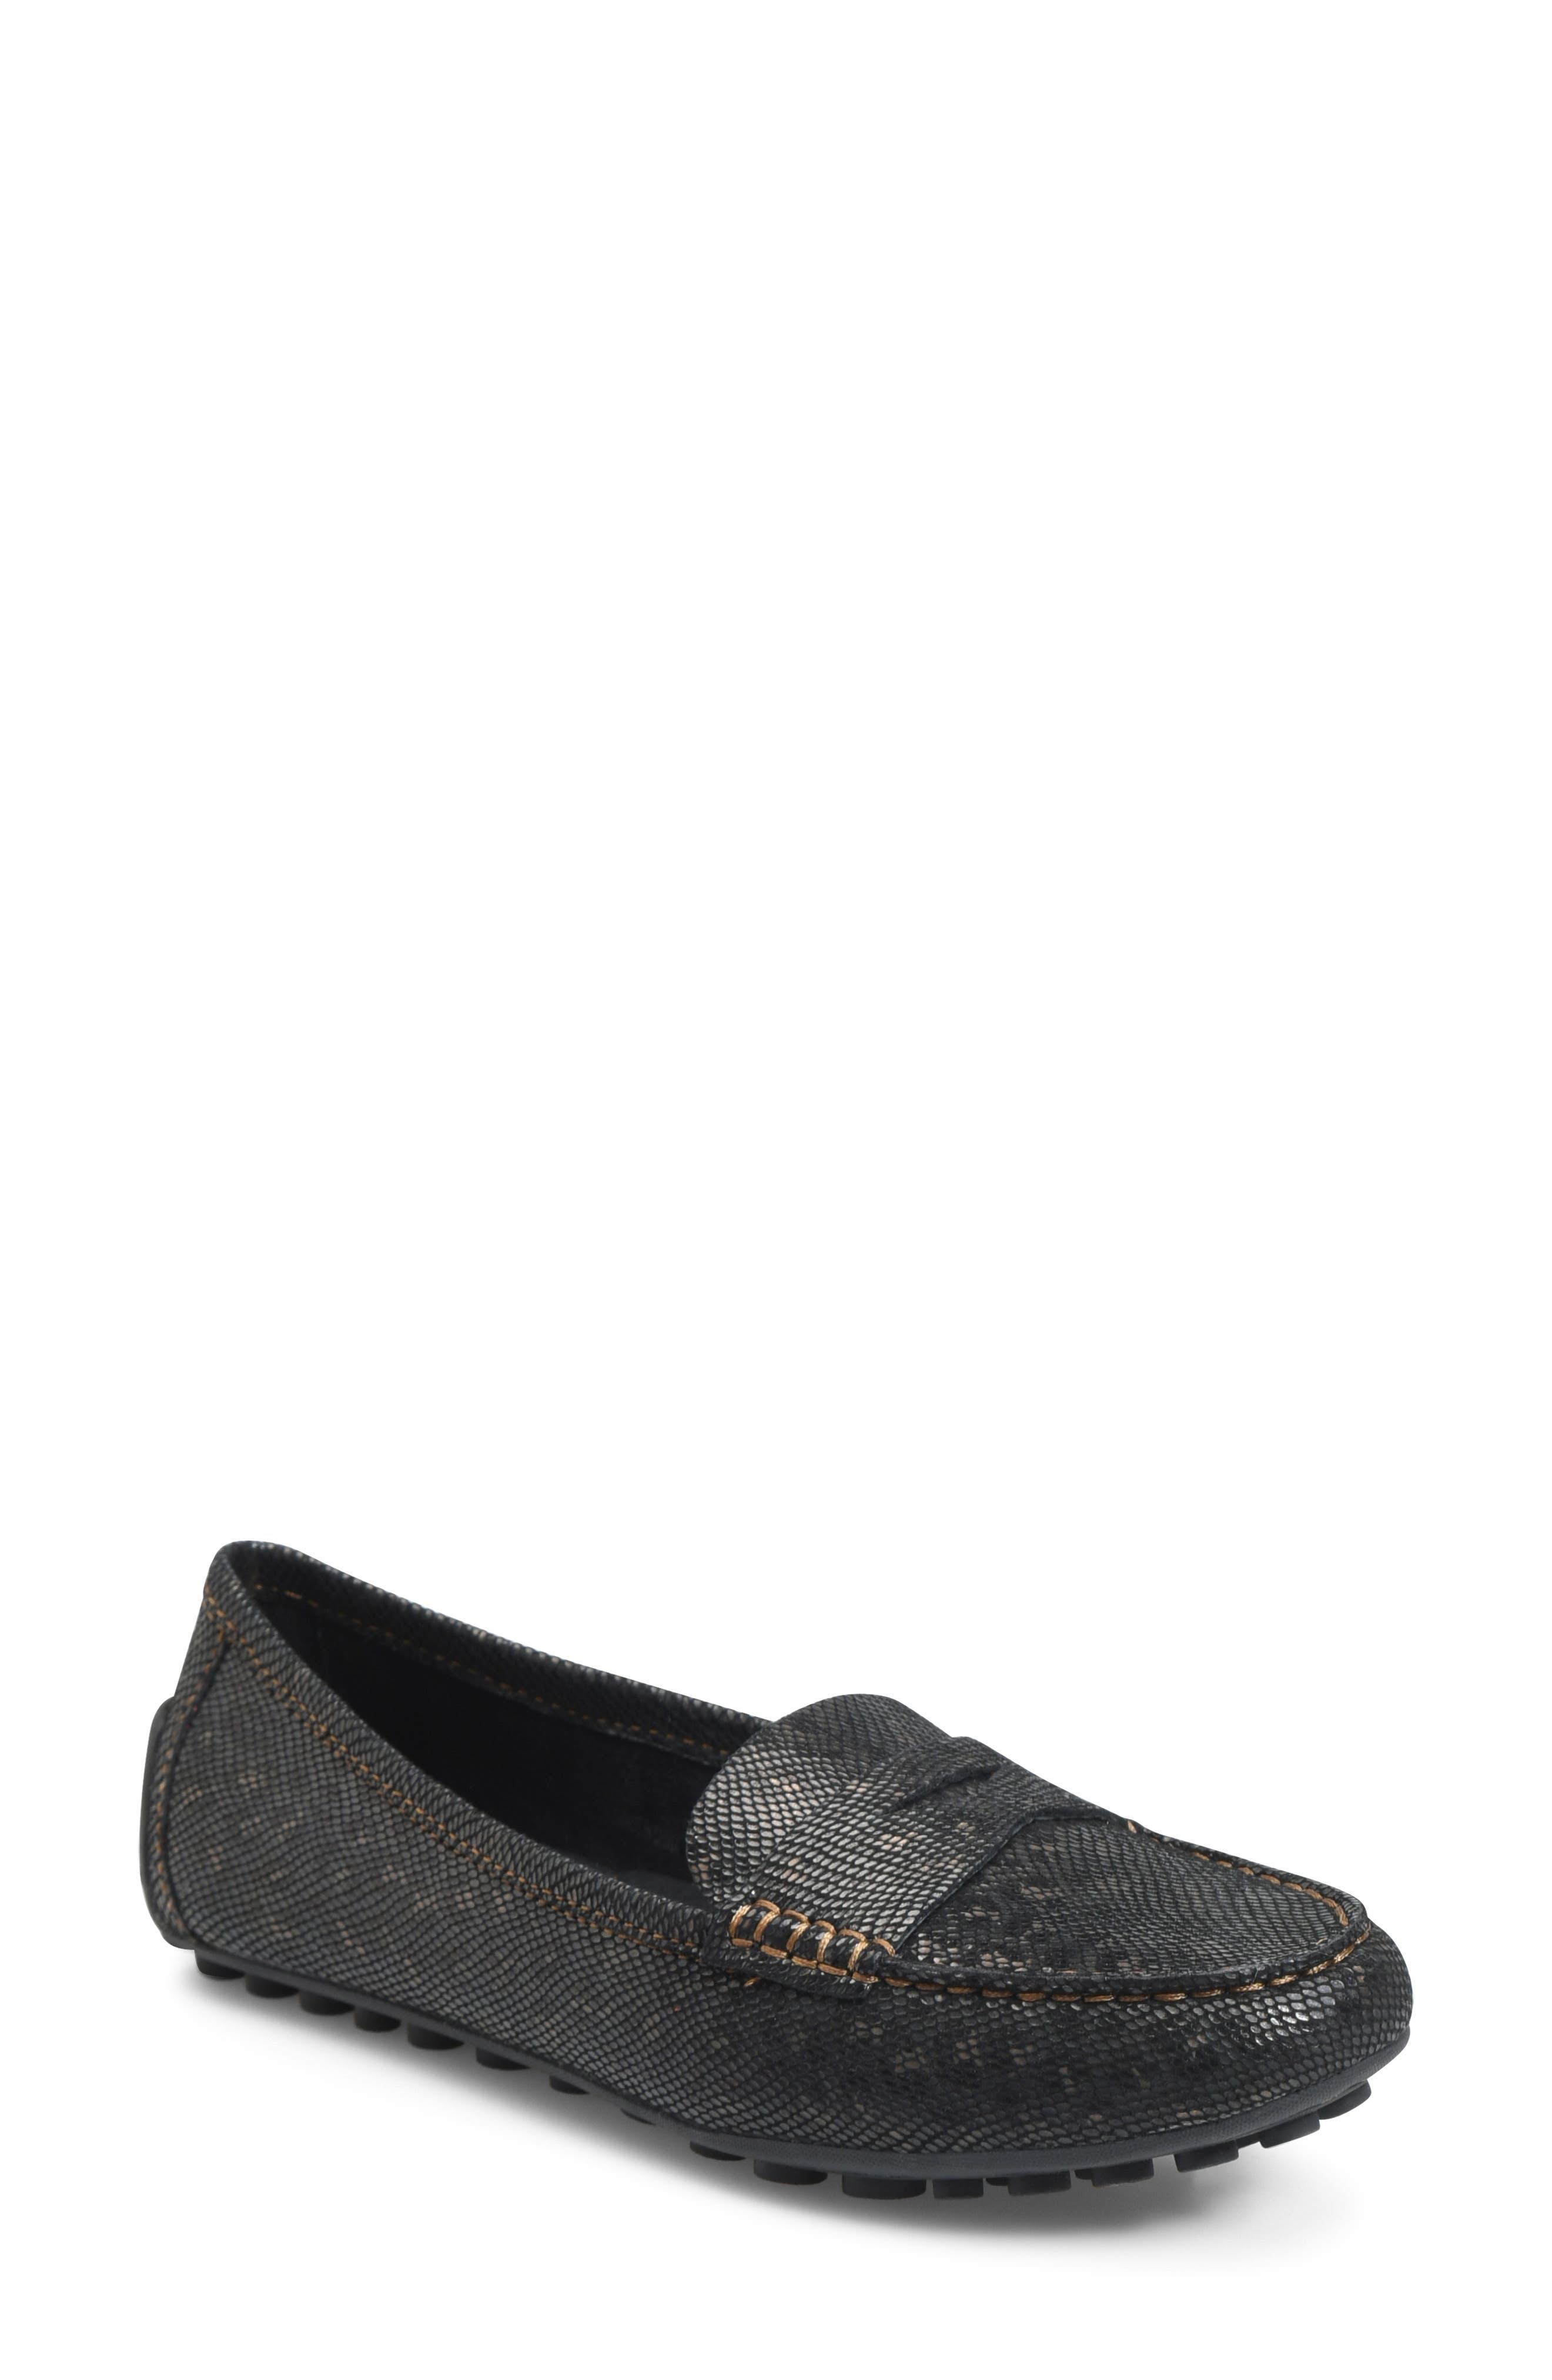 Malena Driving Loafer,                         Main,                         color, 012